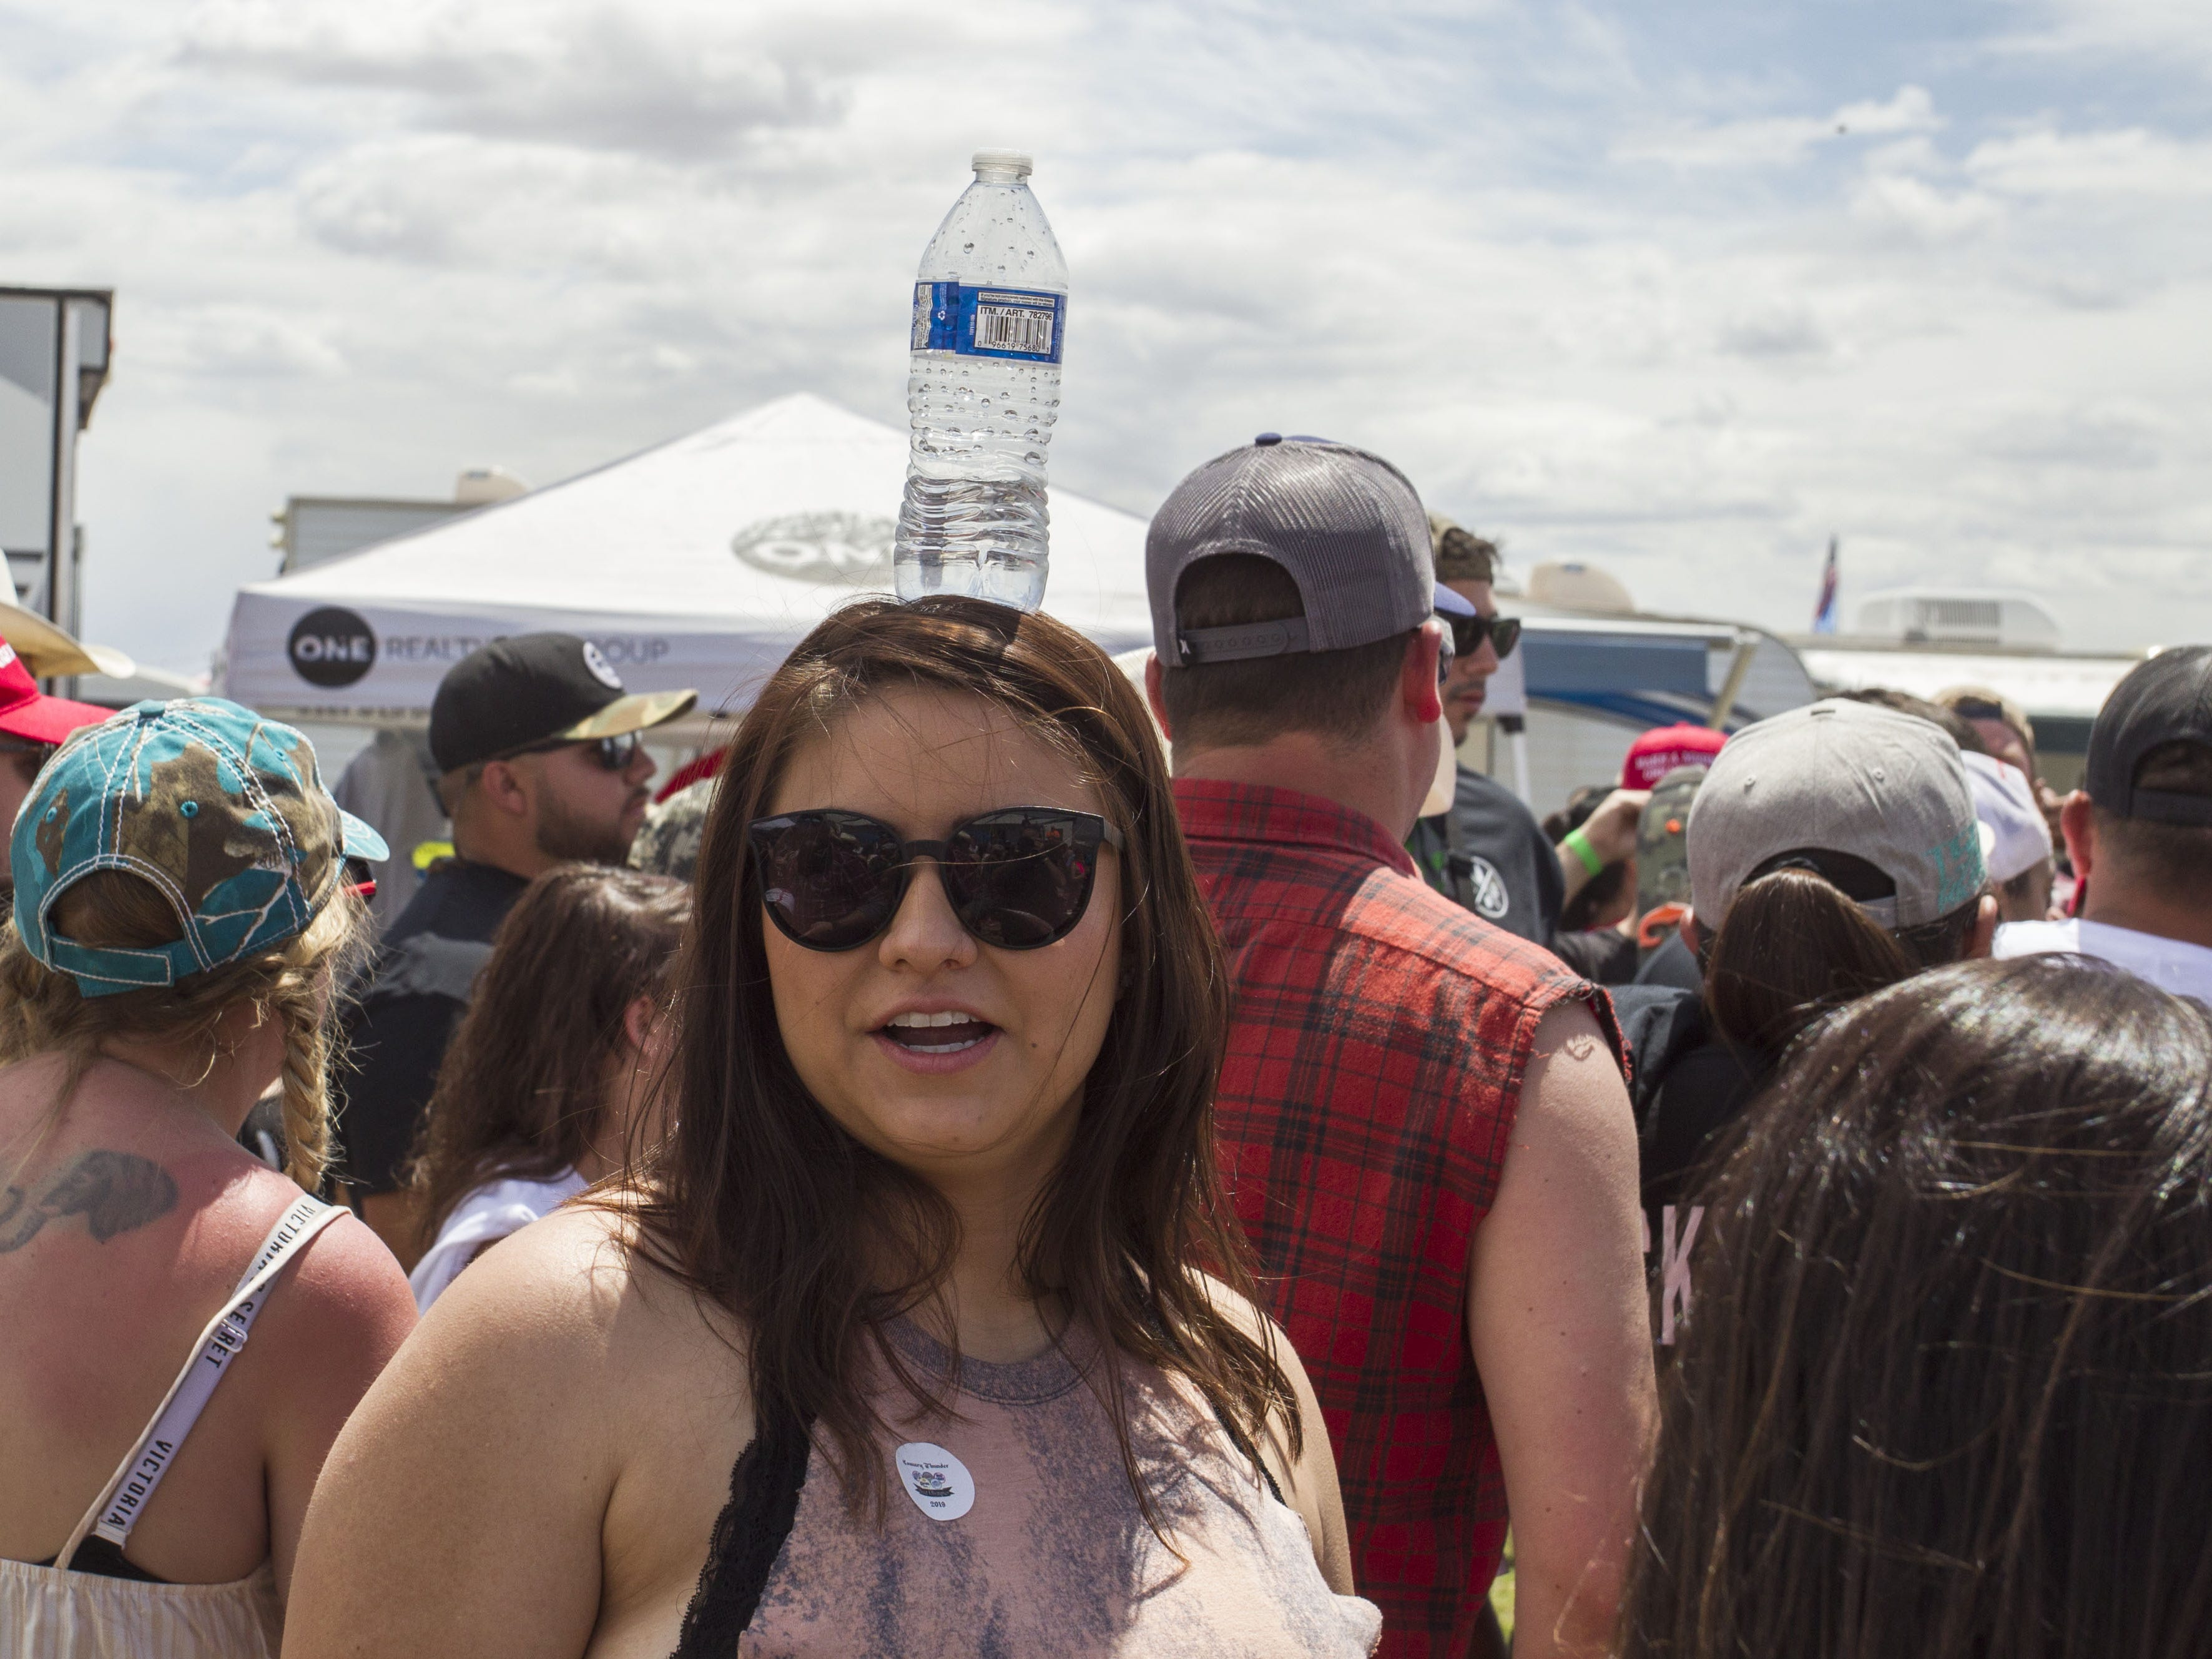 Festival-goers gather at Country Thunder Arizona Friday, April 12, 2019, in Florence, Arizona.